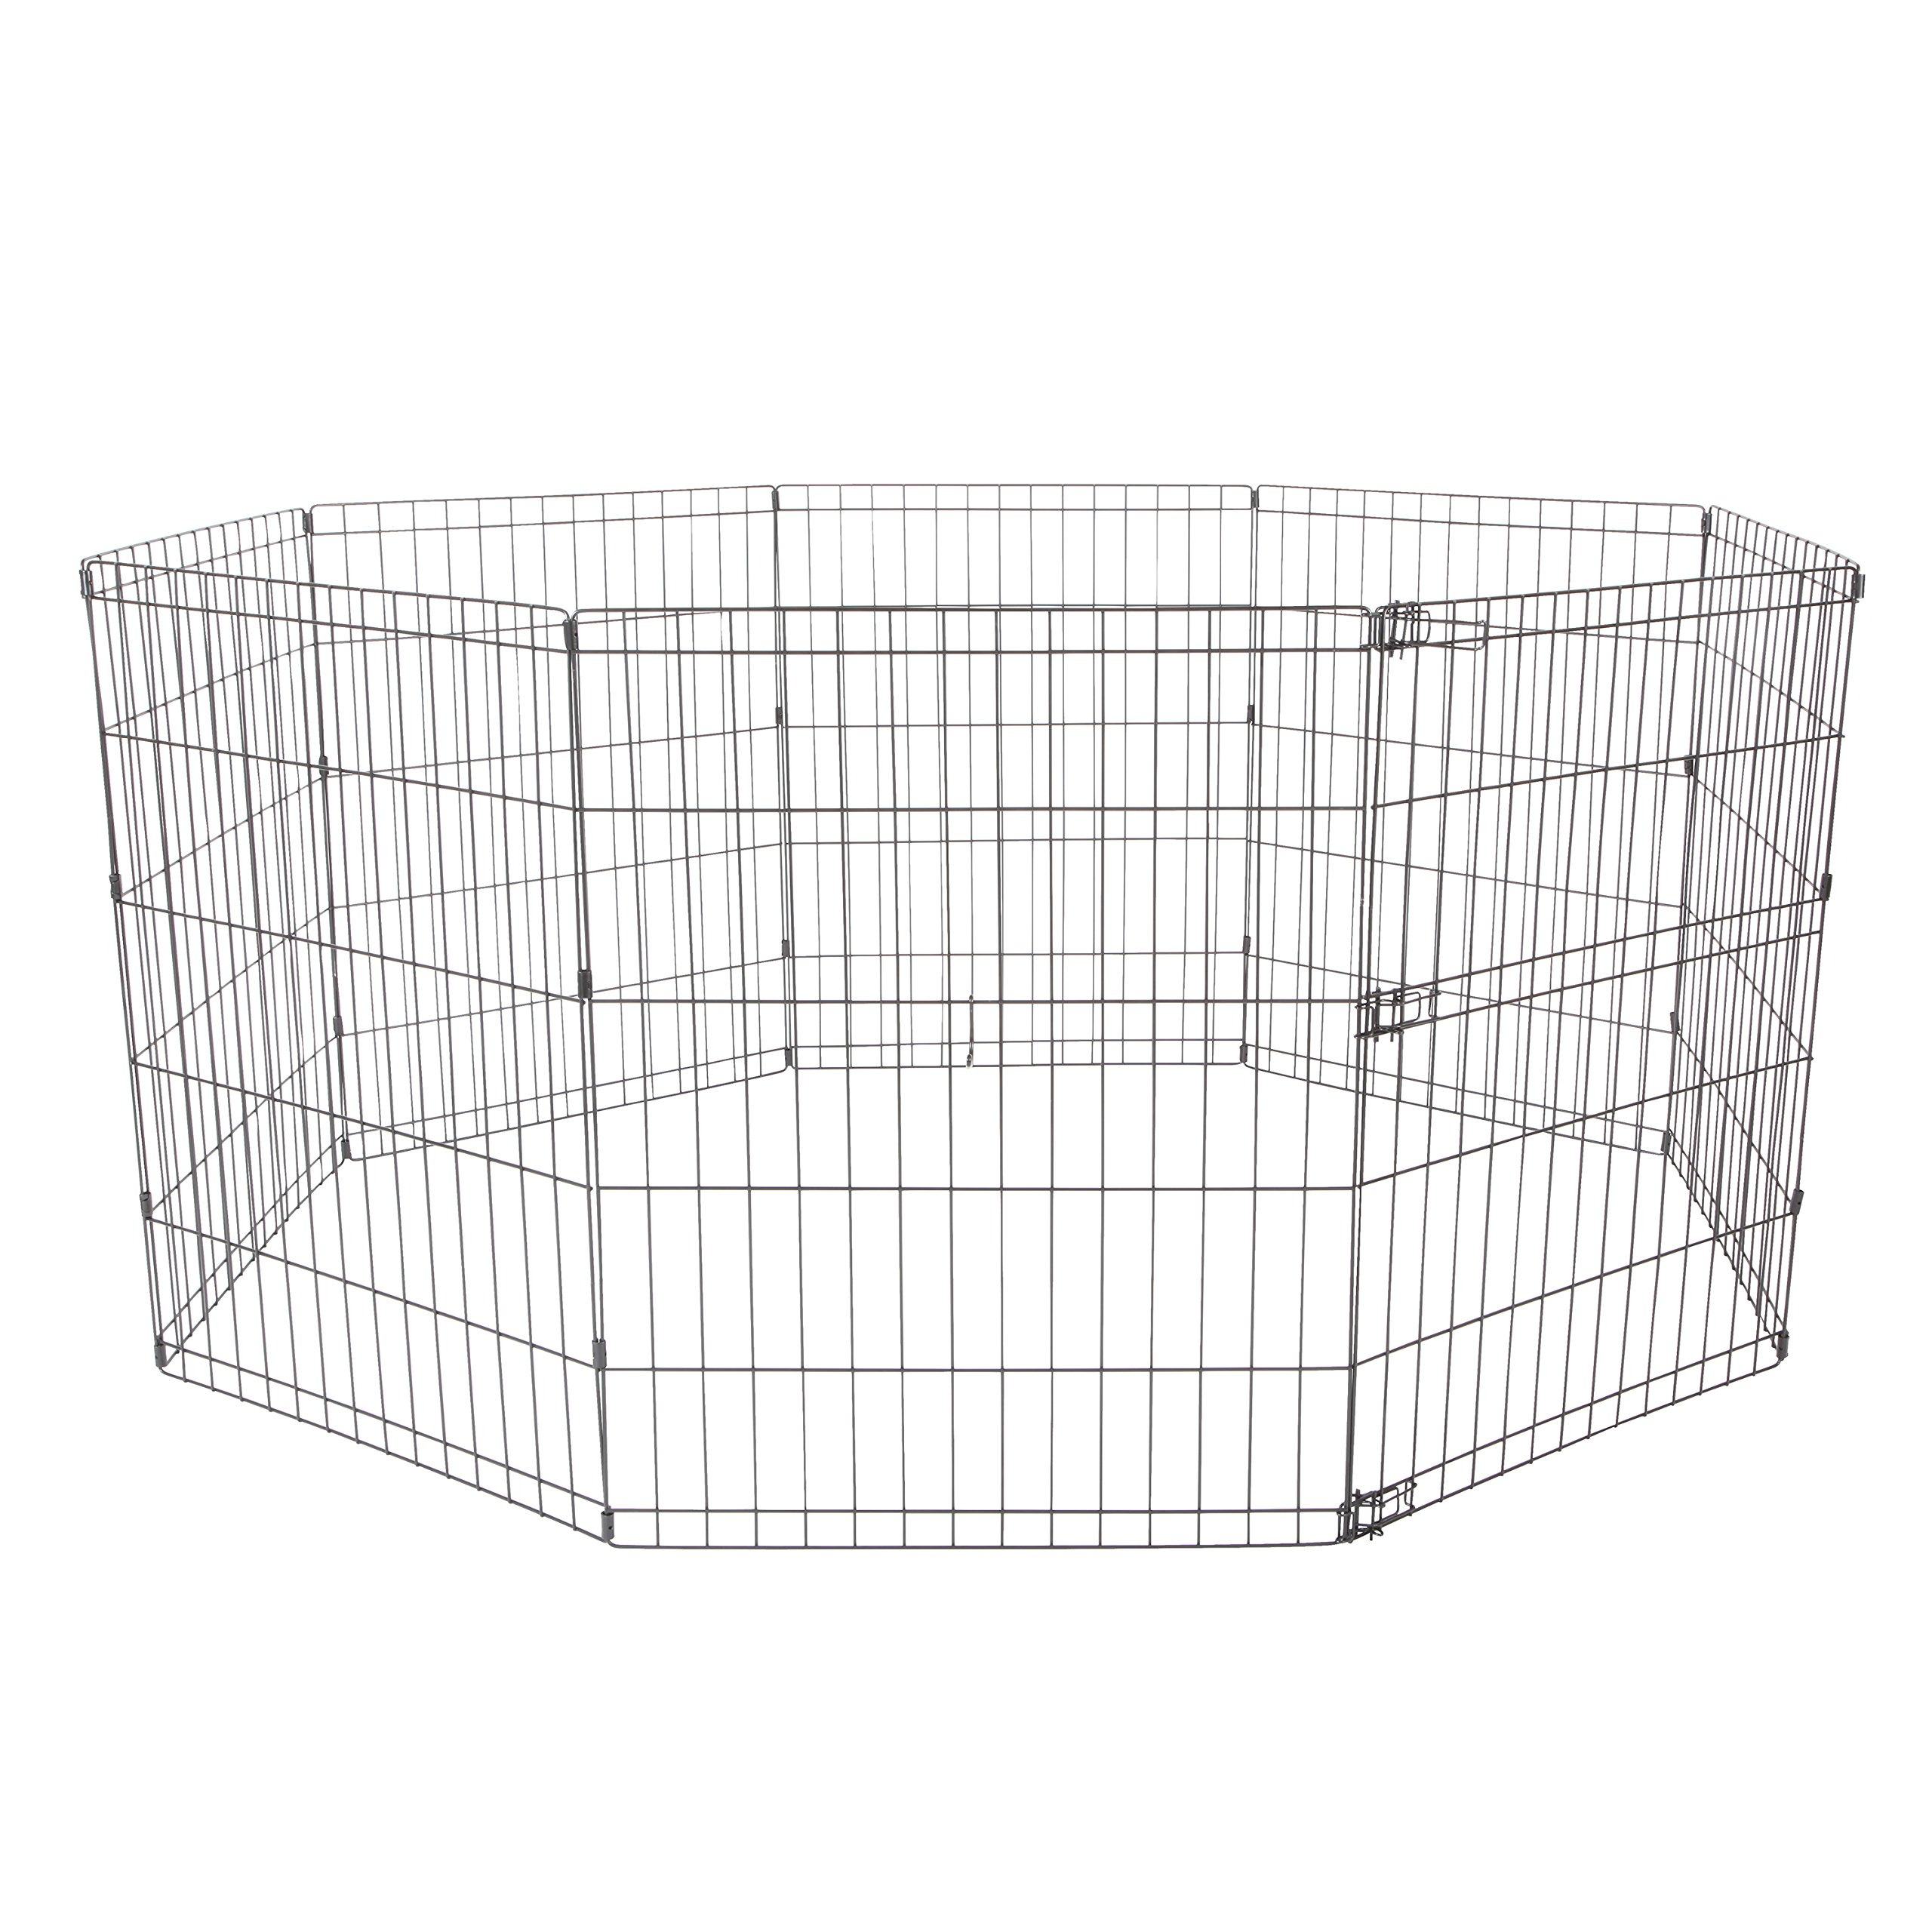 Dogit Outdoor Dog Playpen, Safe and Sturdy Crate for Aminals, Medium by Dogit